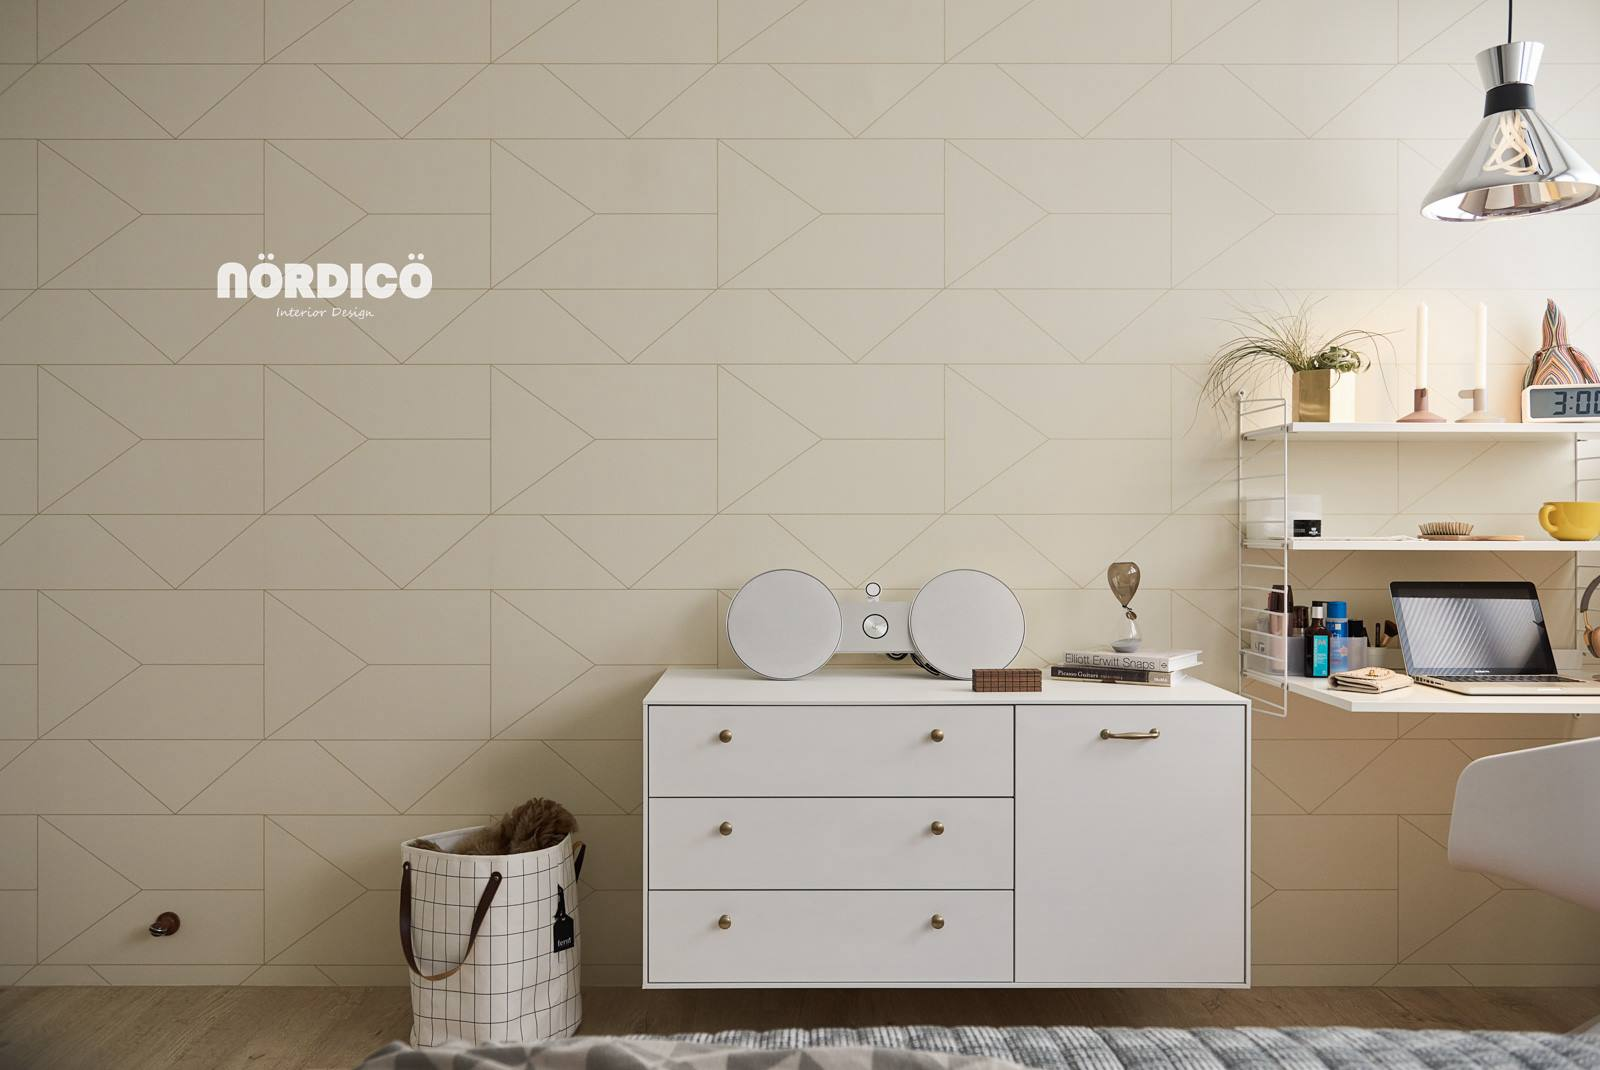 Geometric Tile In Nordic Themed Home - Nordic decor inspiration in two colorful homes